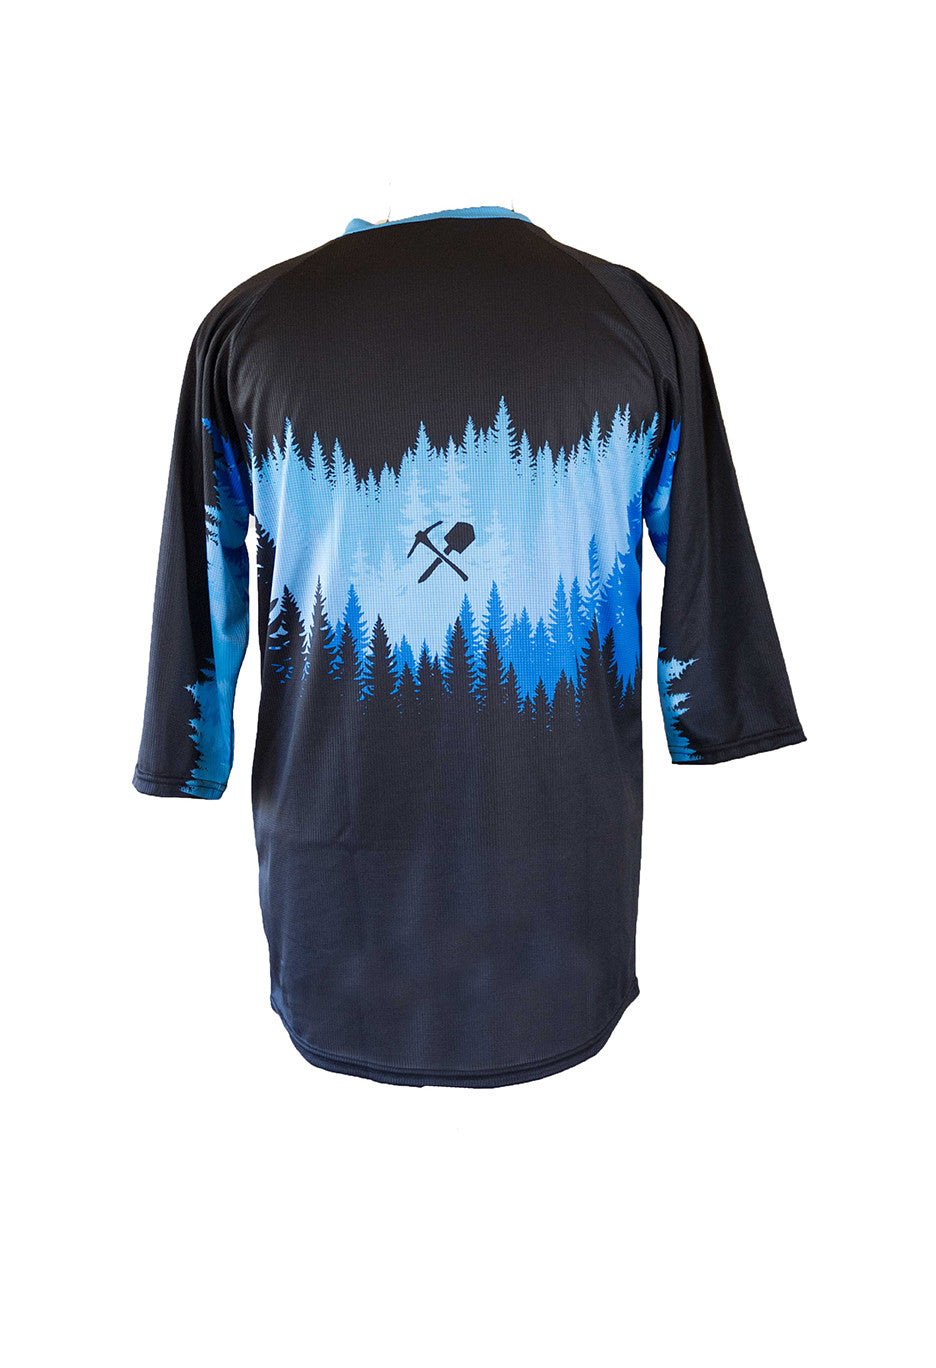 MtnRanks Tree Line 3/4 sleeve downhill enduro mtb mountain bike jersey back